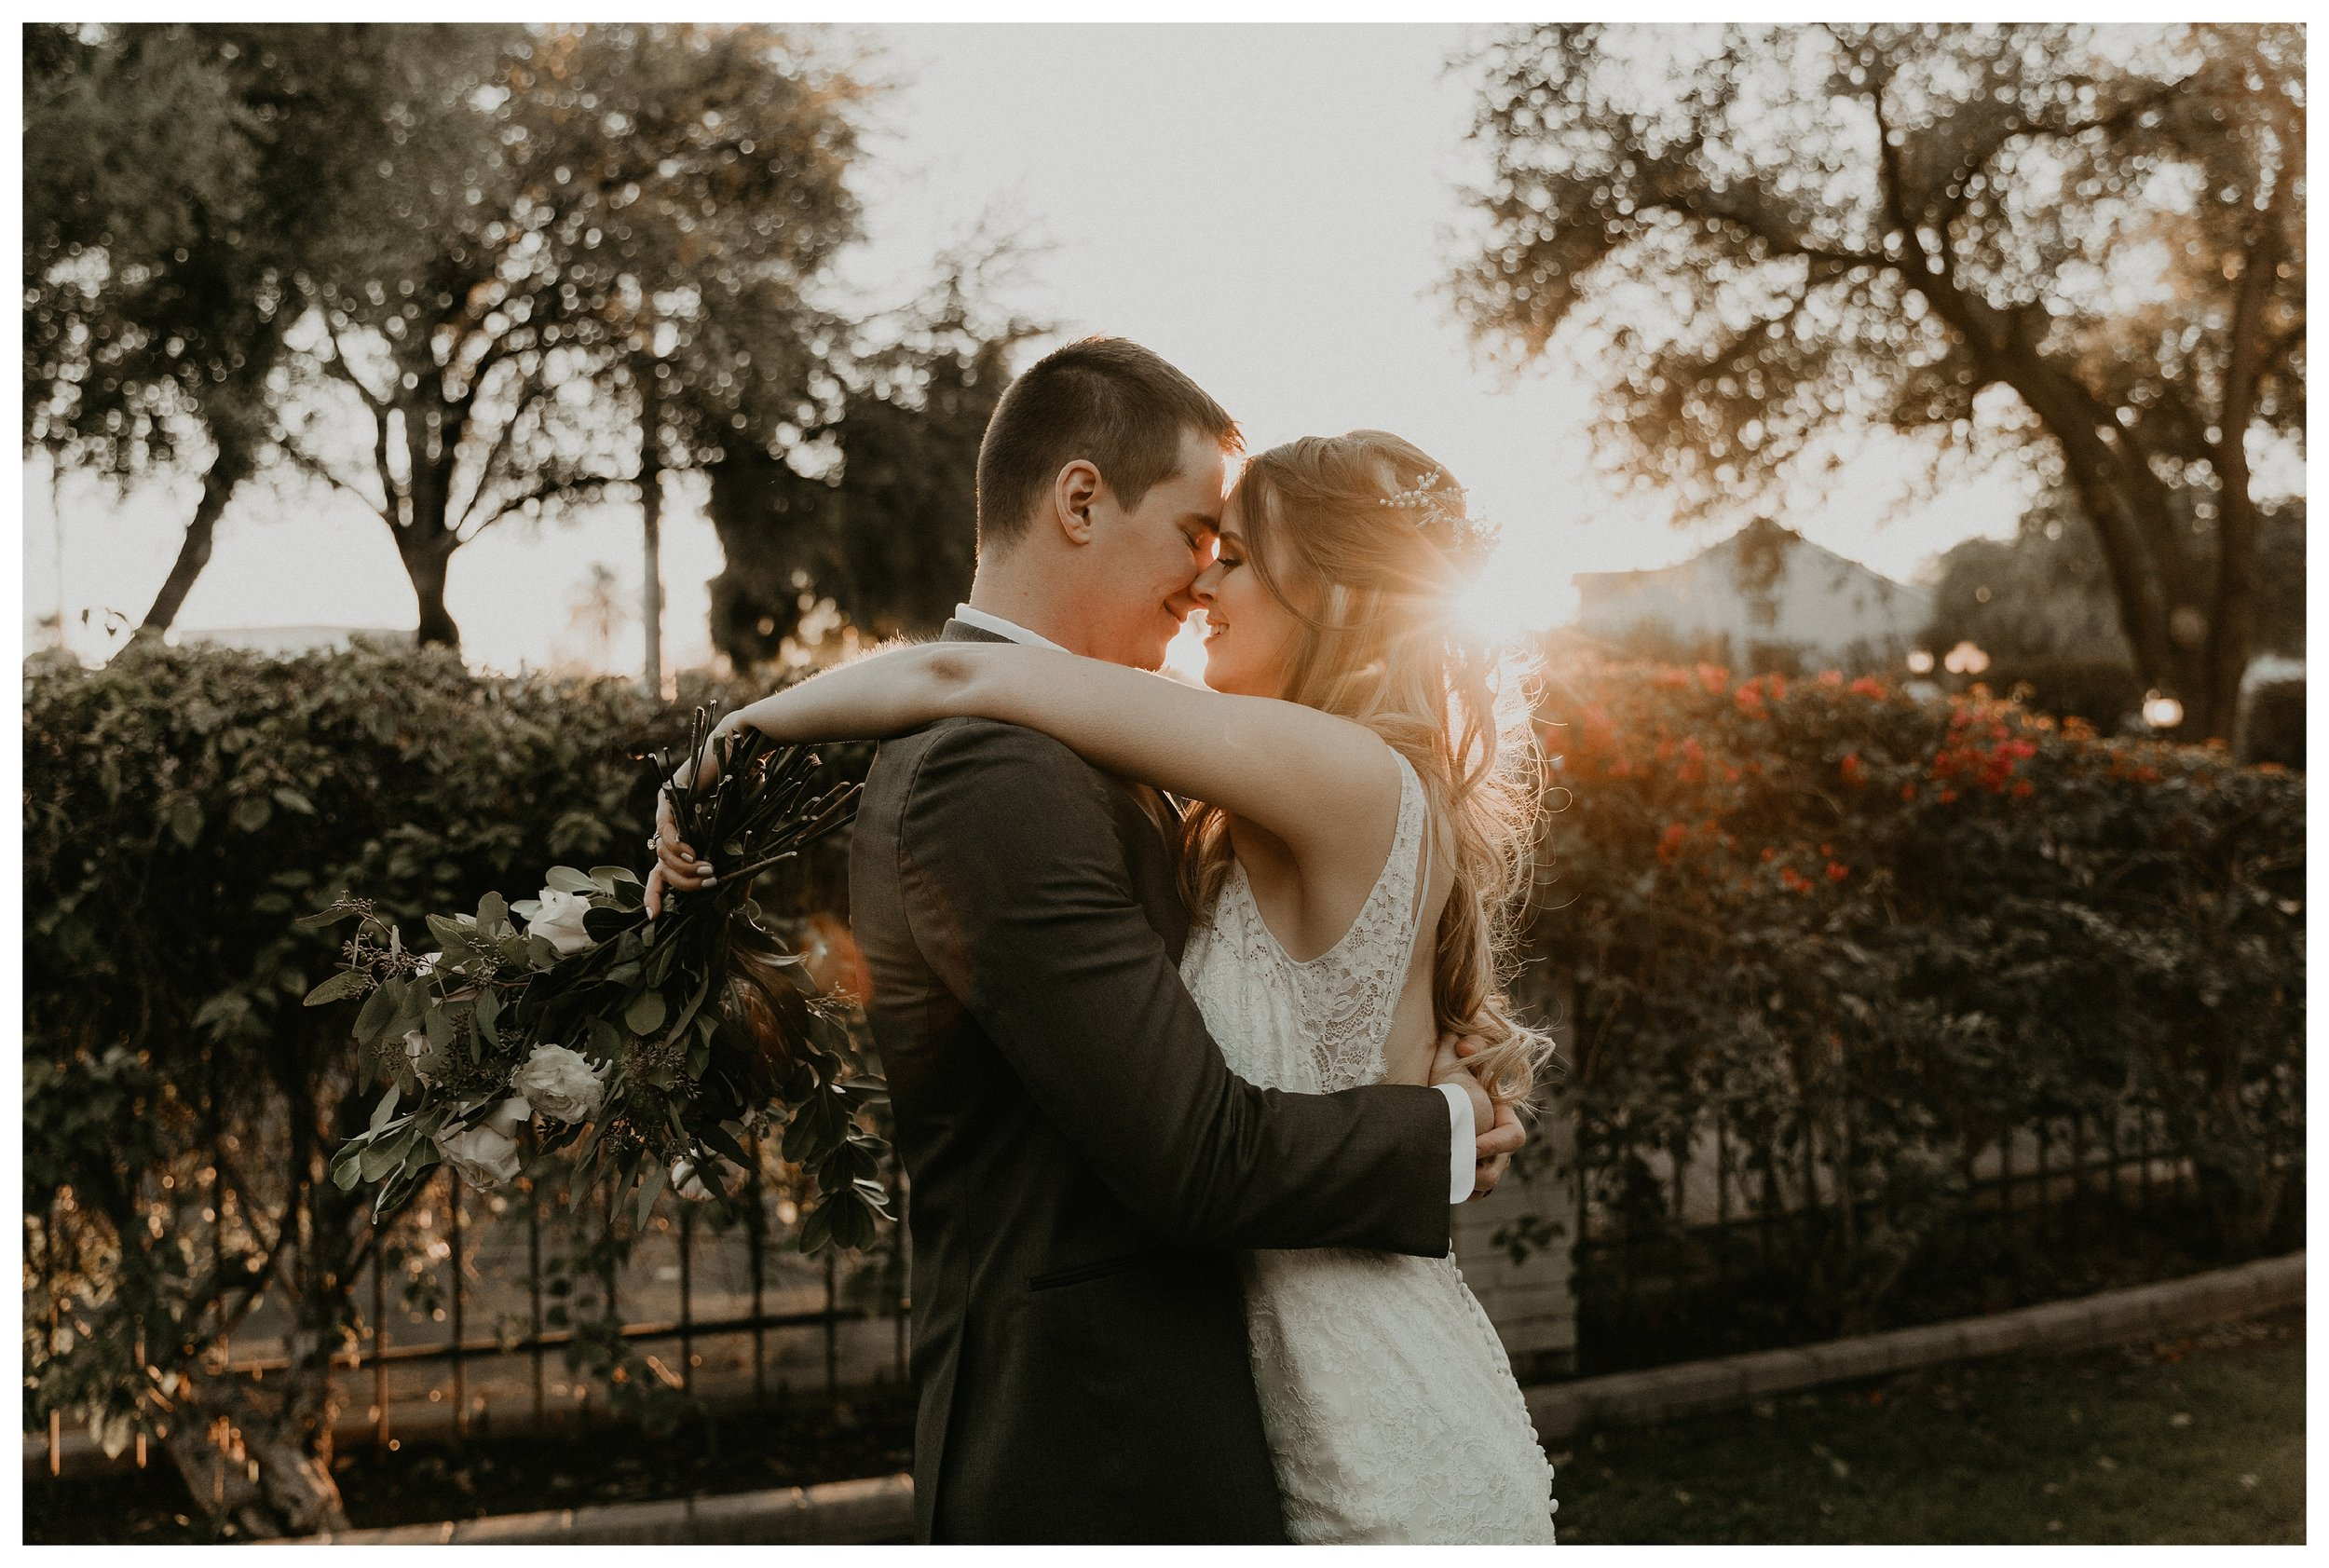 The wright house wedding during golden hour